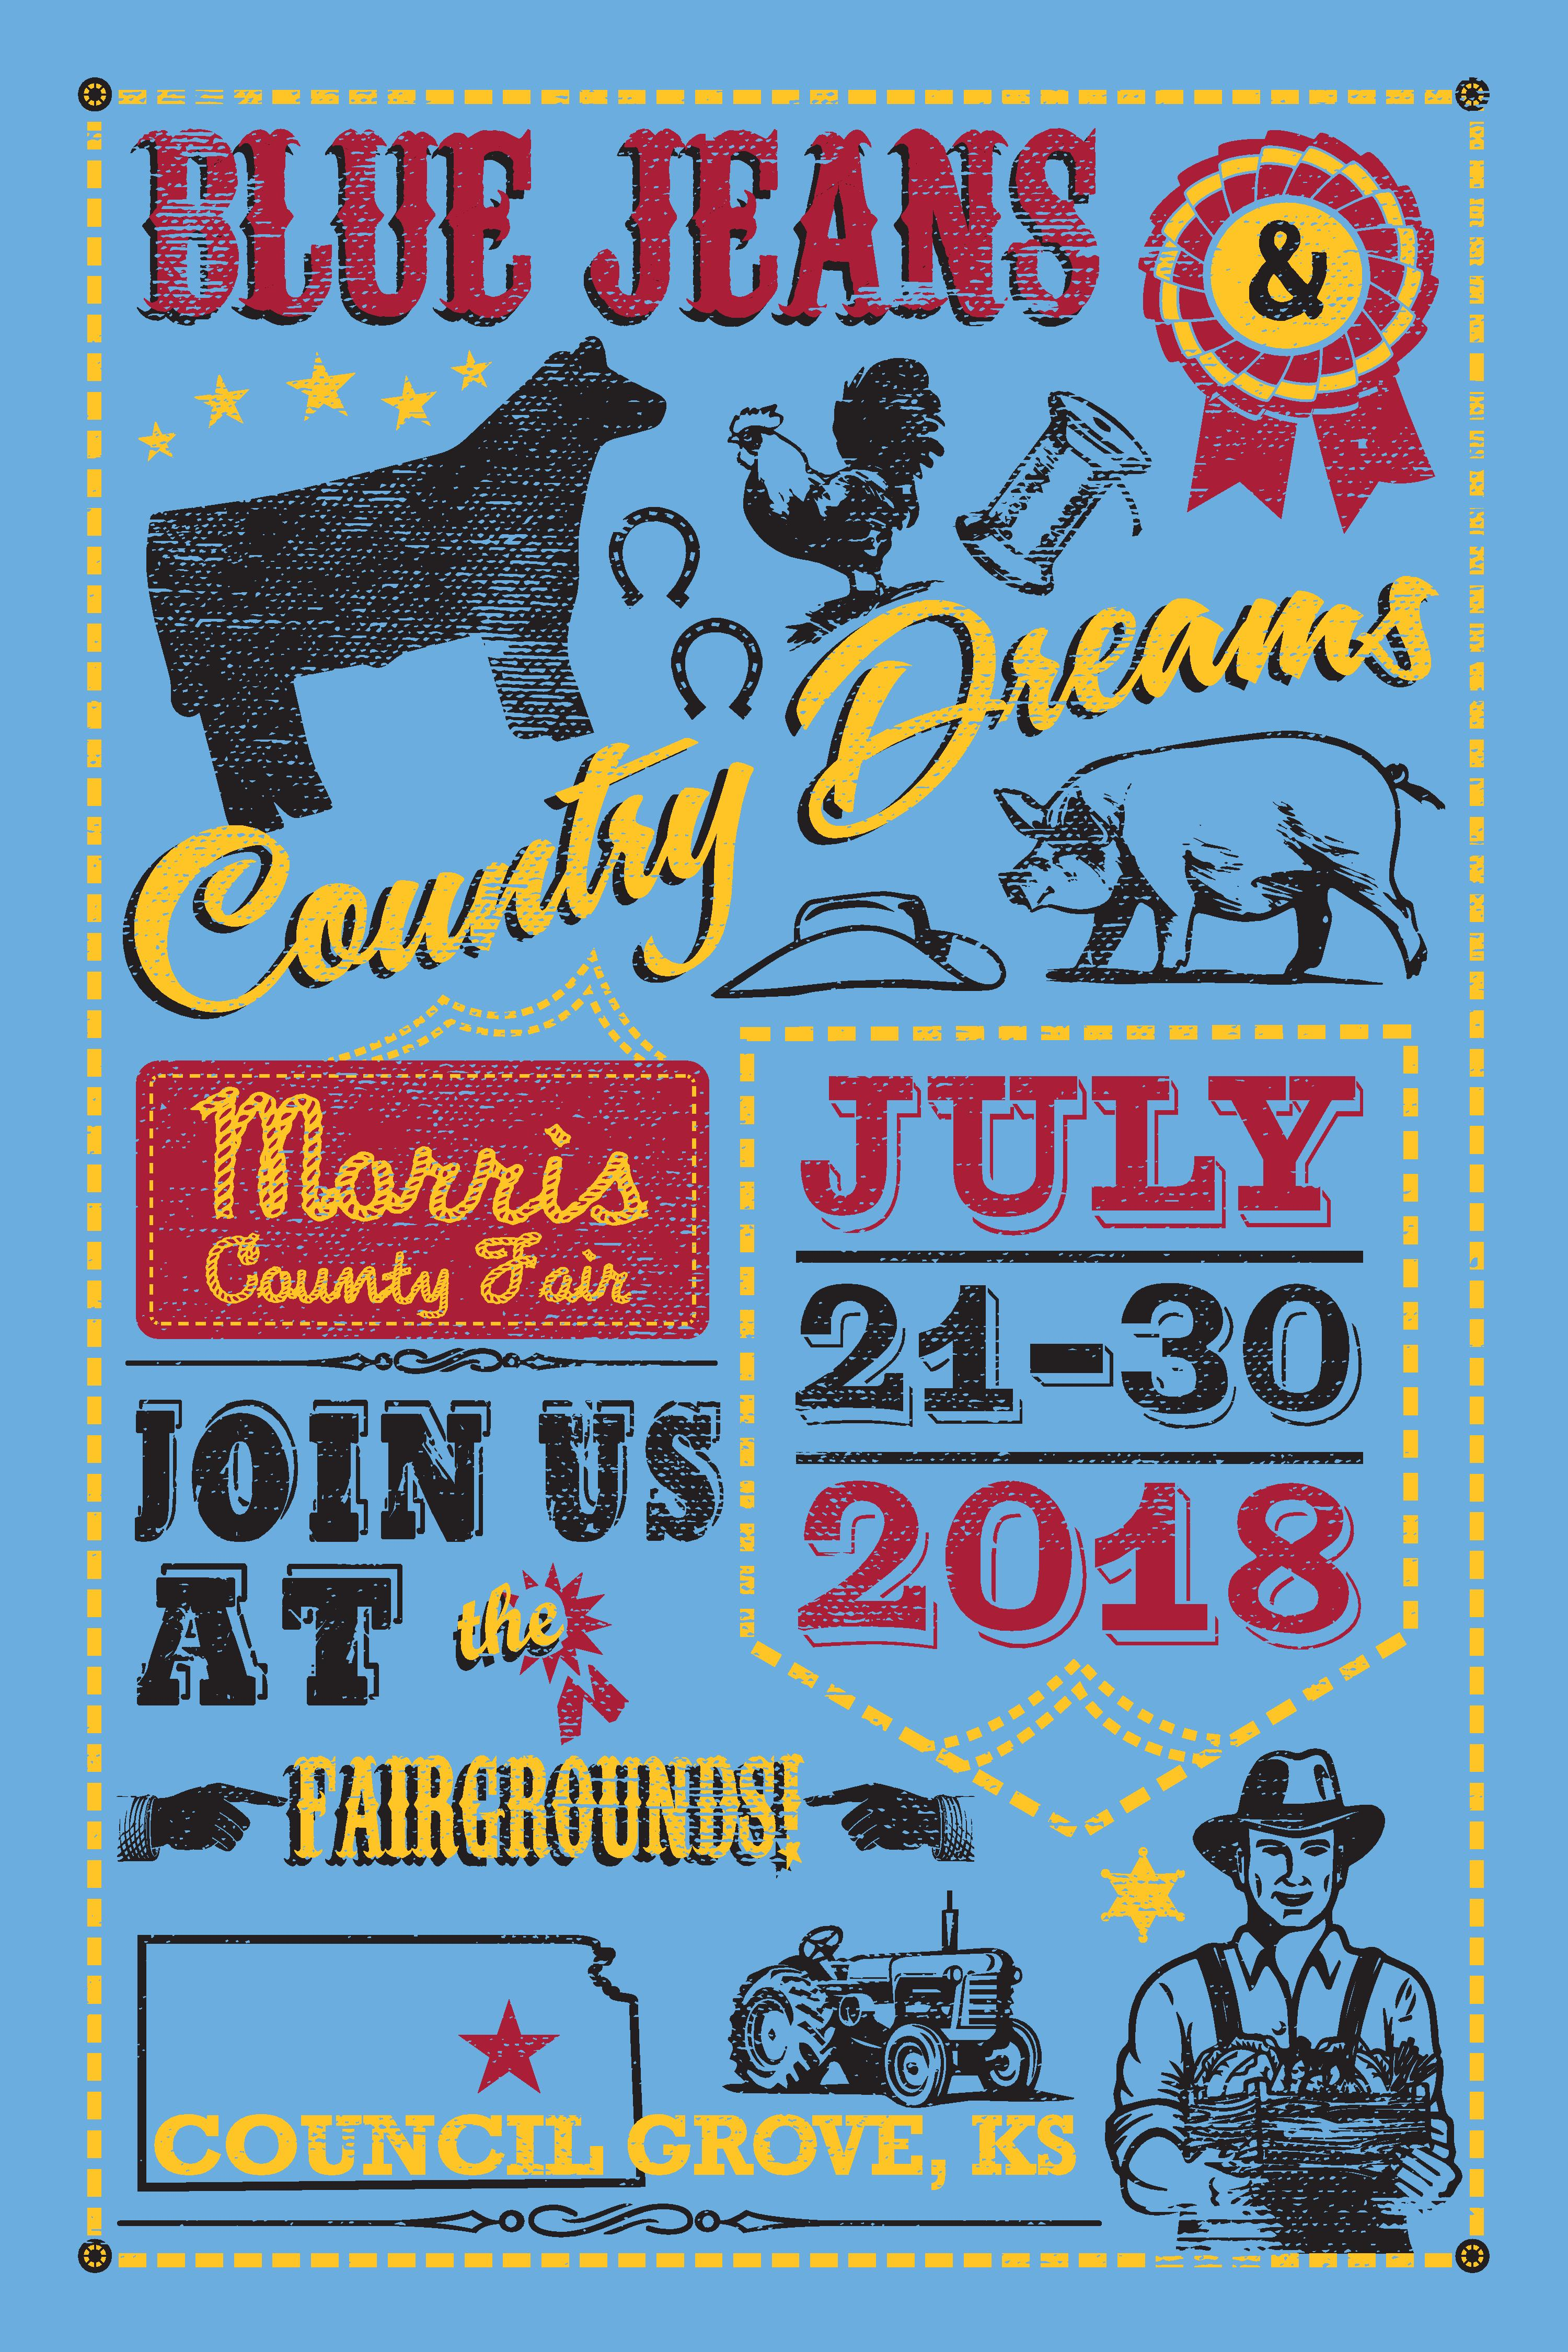 2018 Morris County Fair Schedule!